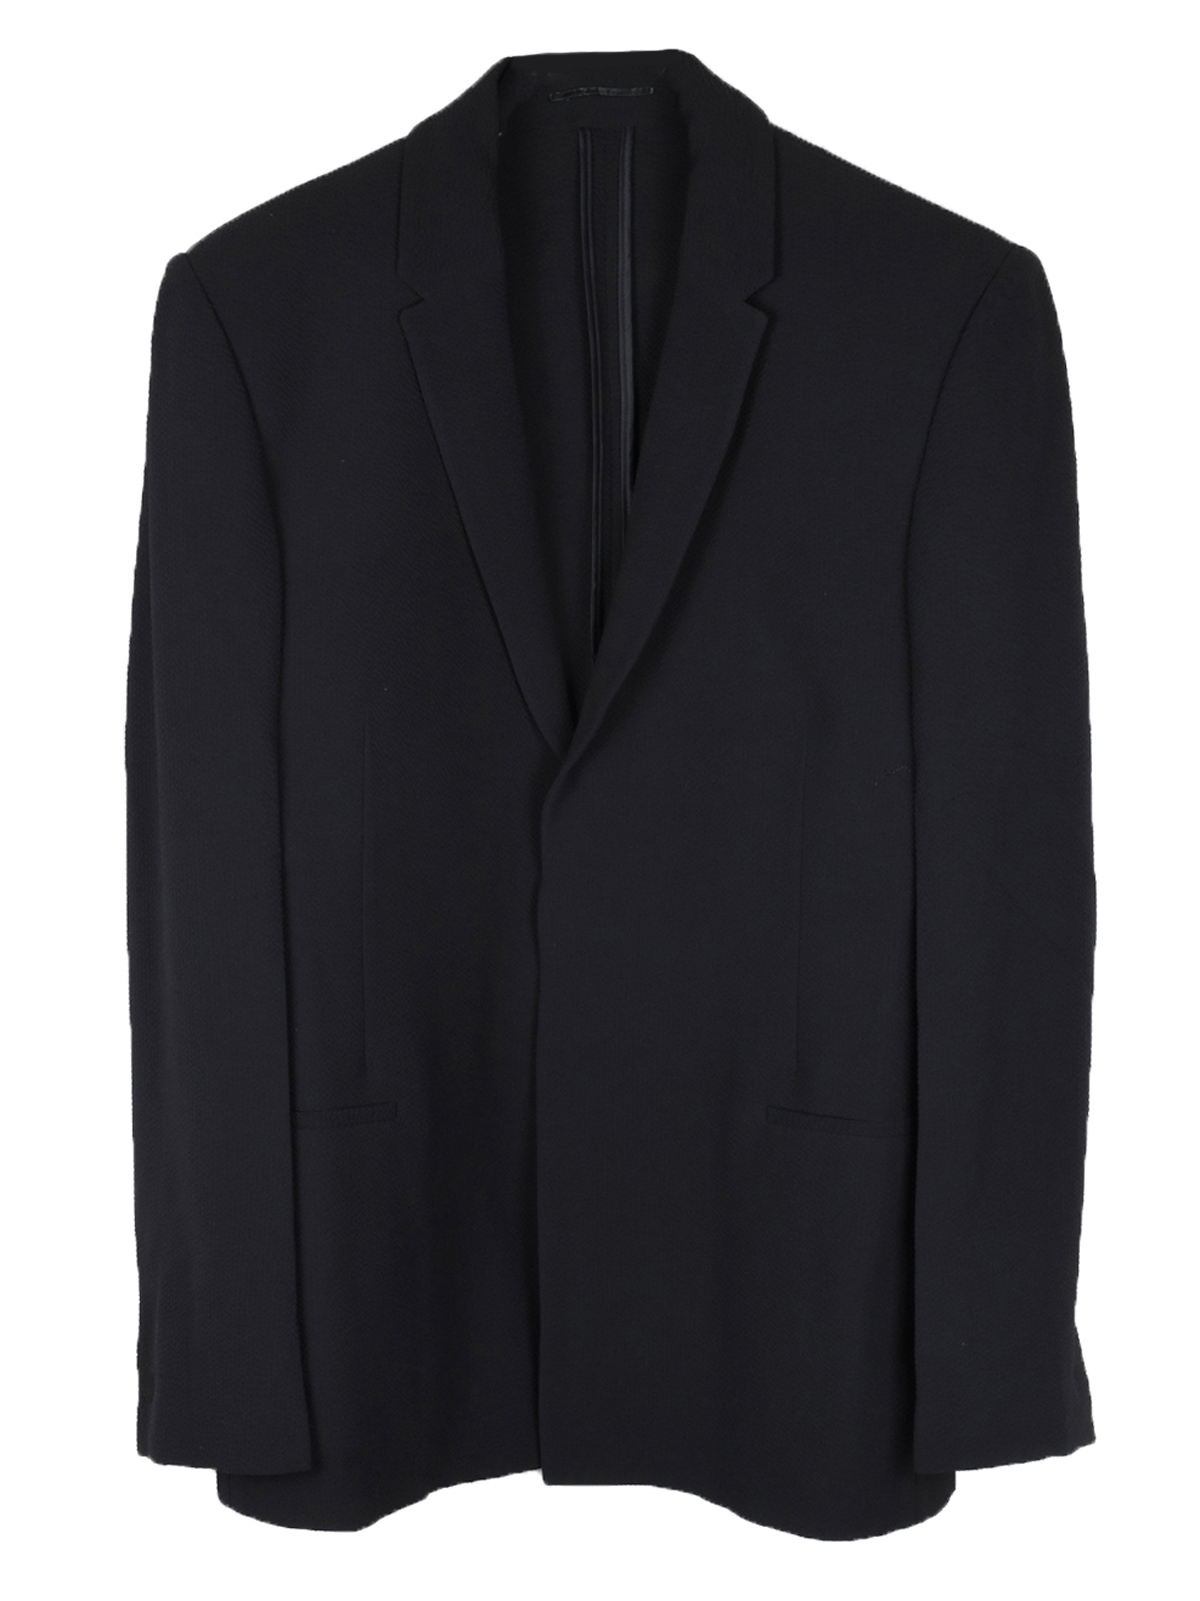 Kilgour Black Wool Tailored Blazer